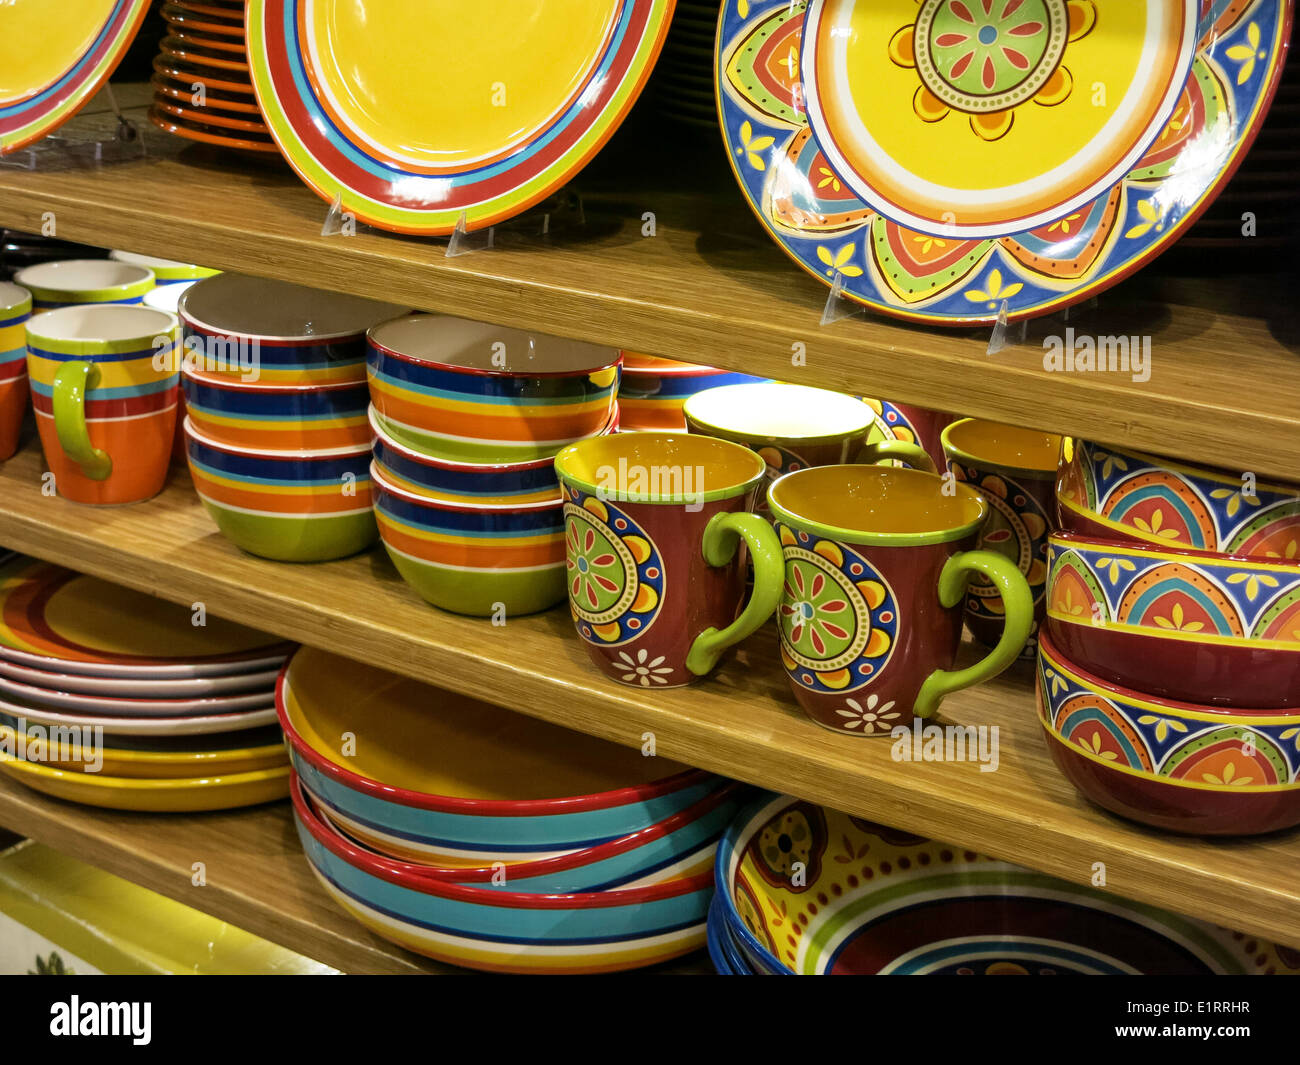 Pottery Display in Pier 1 Imports NYC & Pottery Display in Pier 1 Imports NYC Stock Photo: 69979555 - Alamy